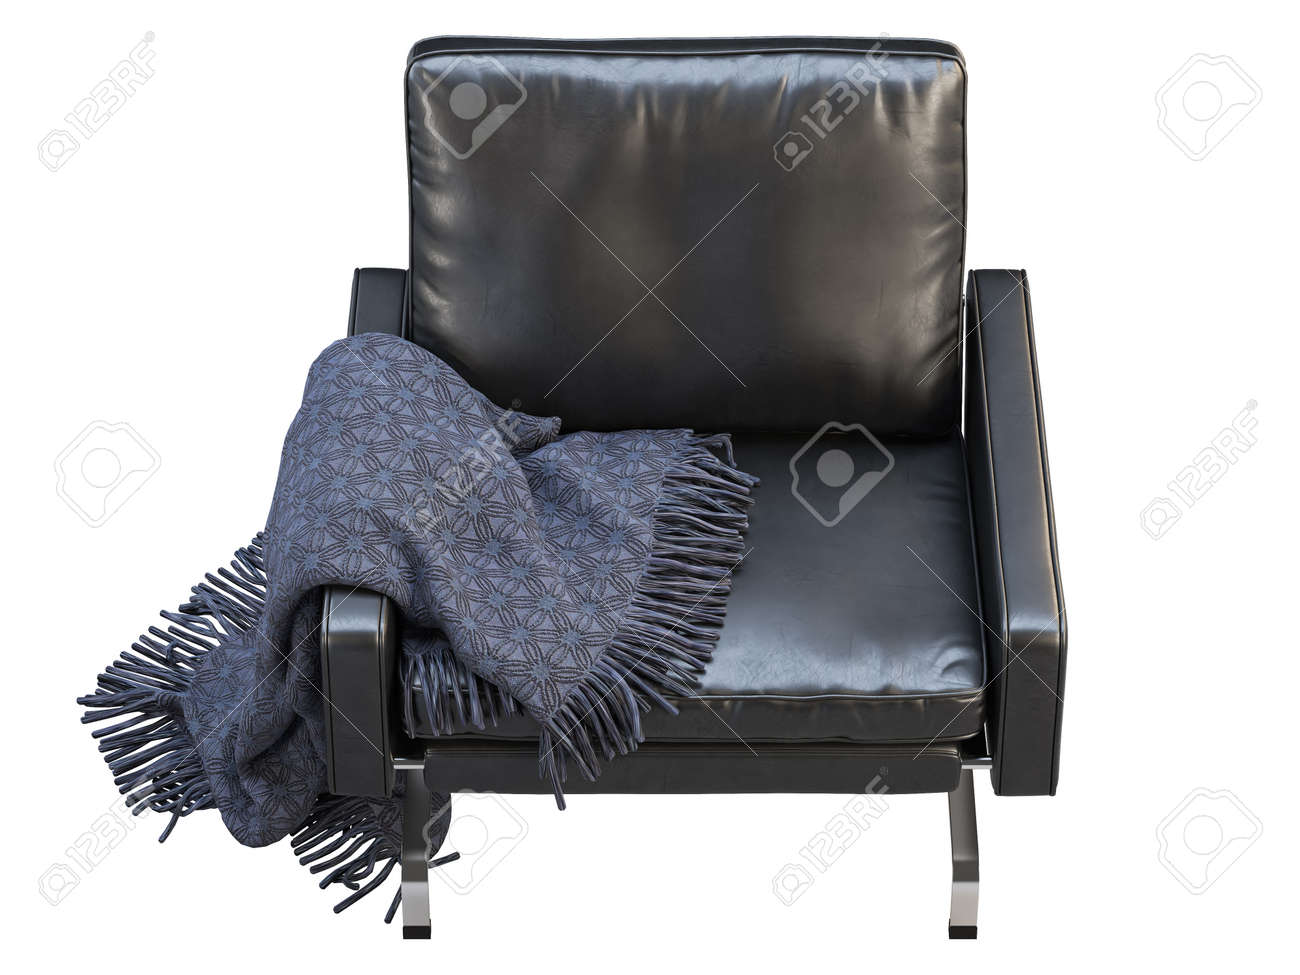 Mid Century Leather Chair Leather Upholstery Armchair With Metal Stock Photo Picture And Royalty Free Image Image 138138890